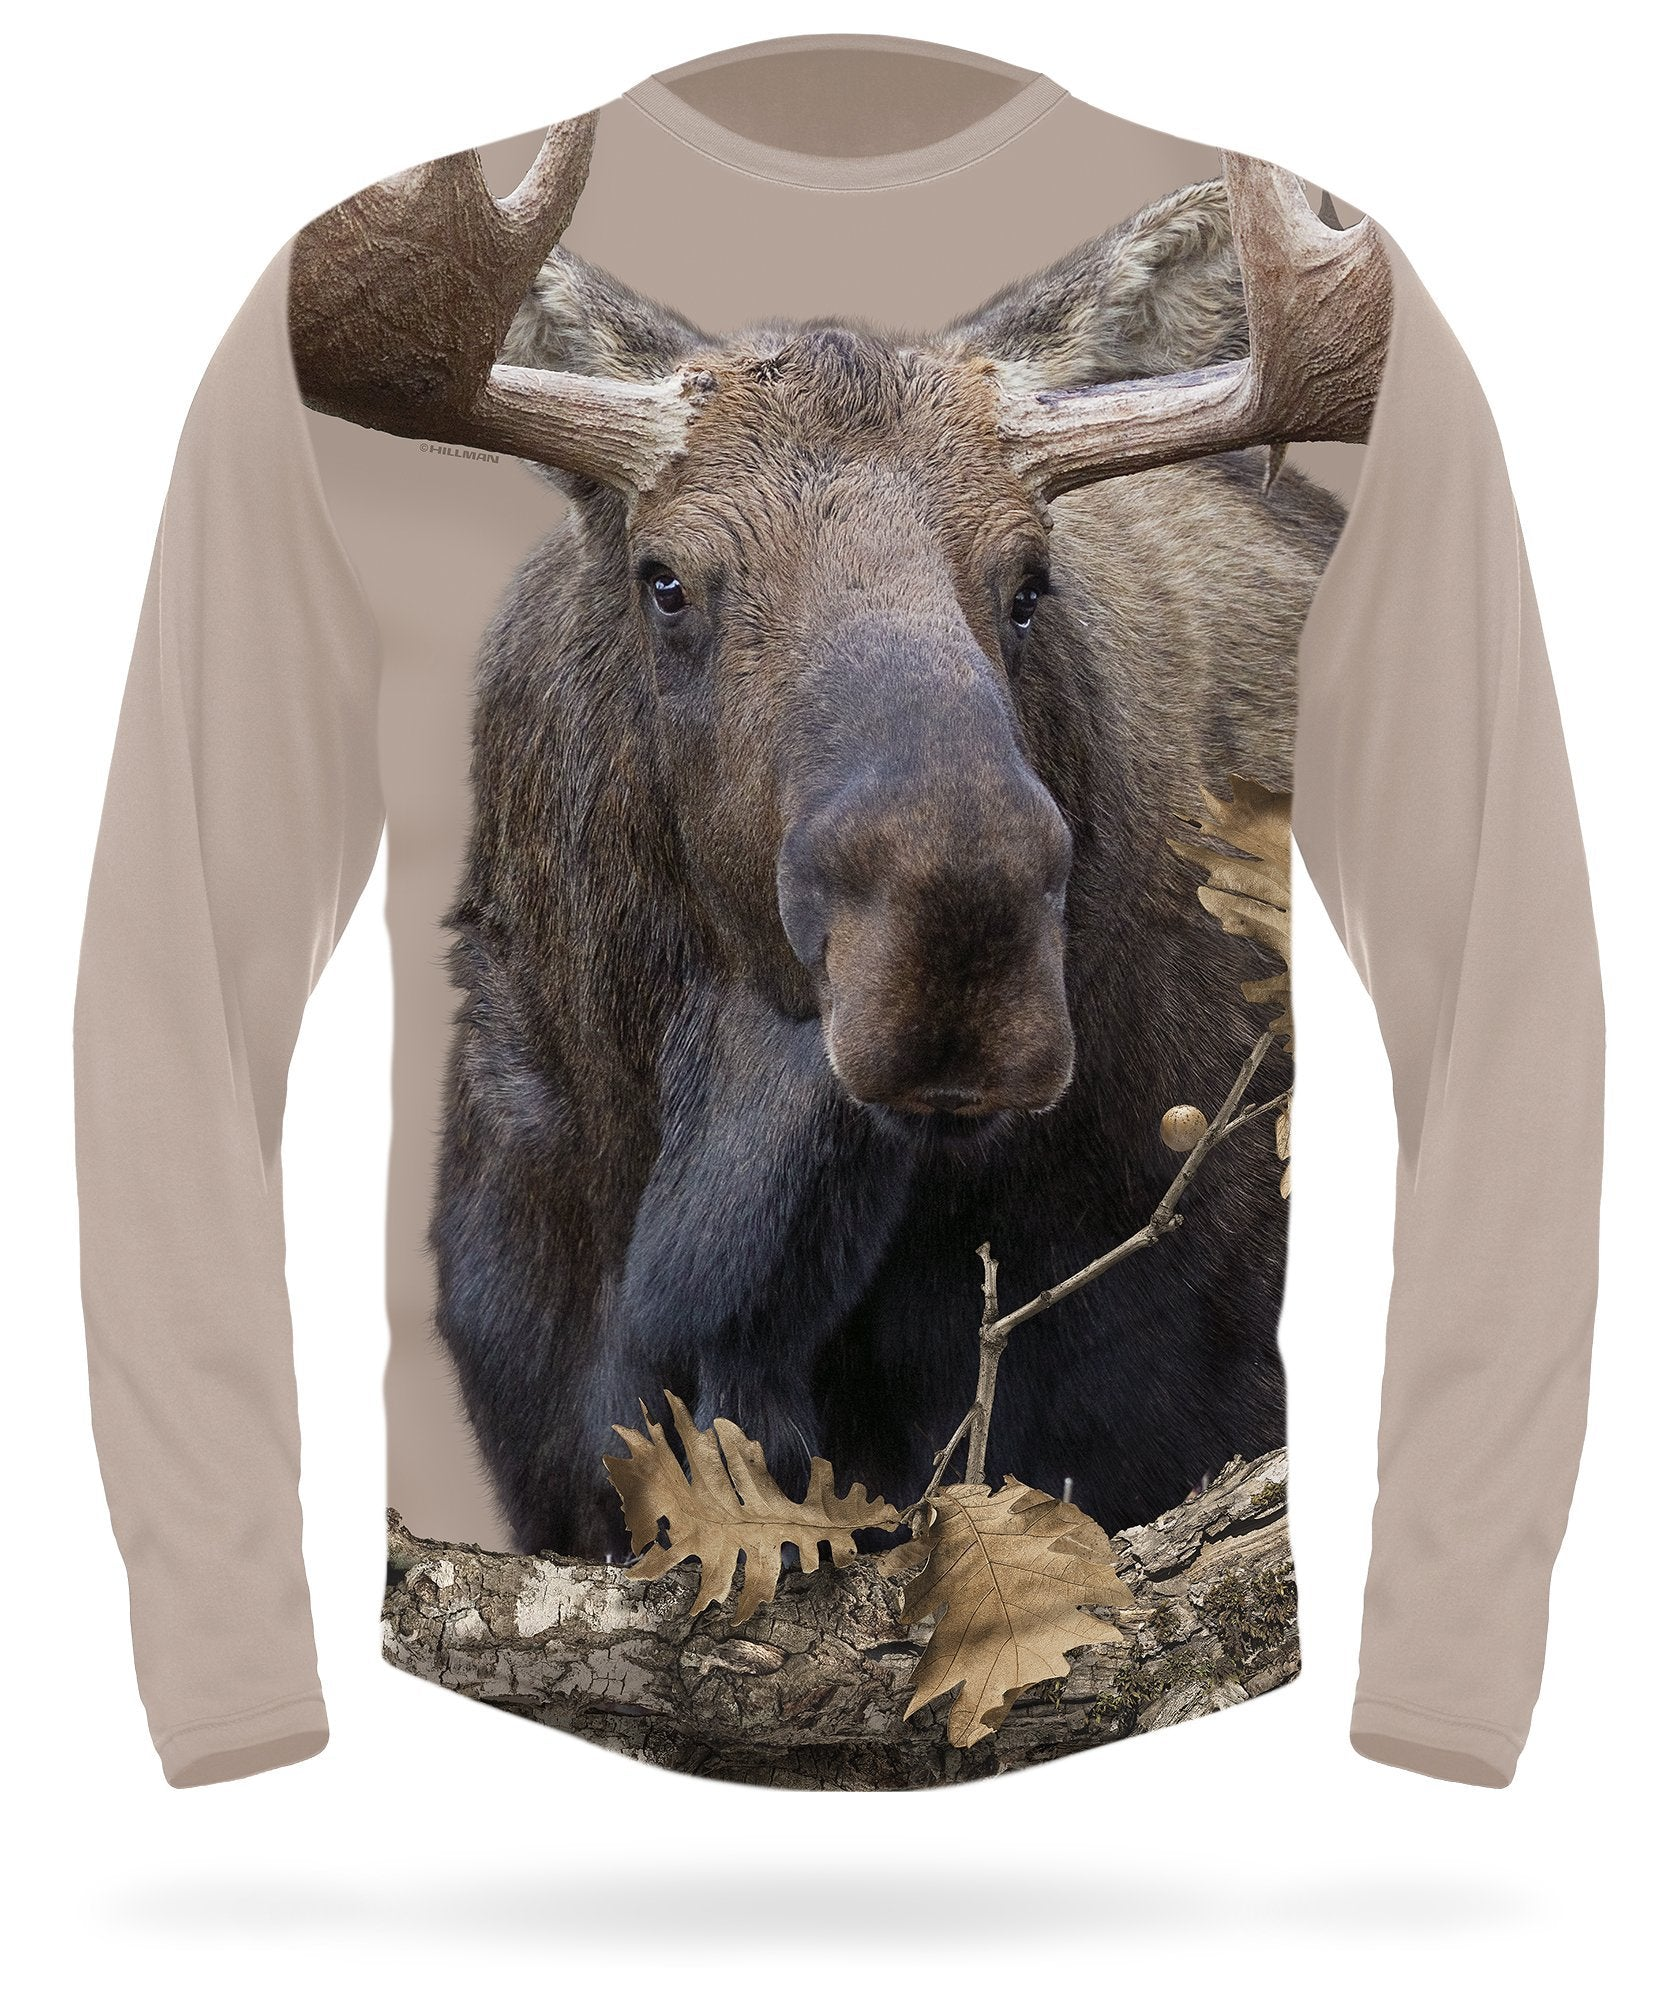 Moose T-shirt Long Sleeve - HILLMAN® hunting gear